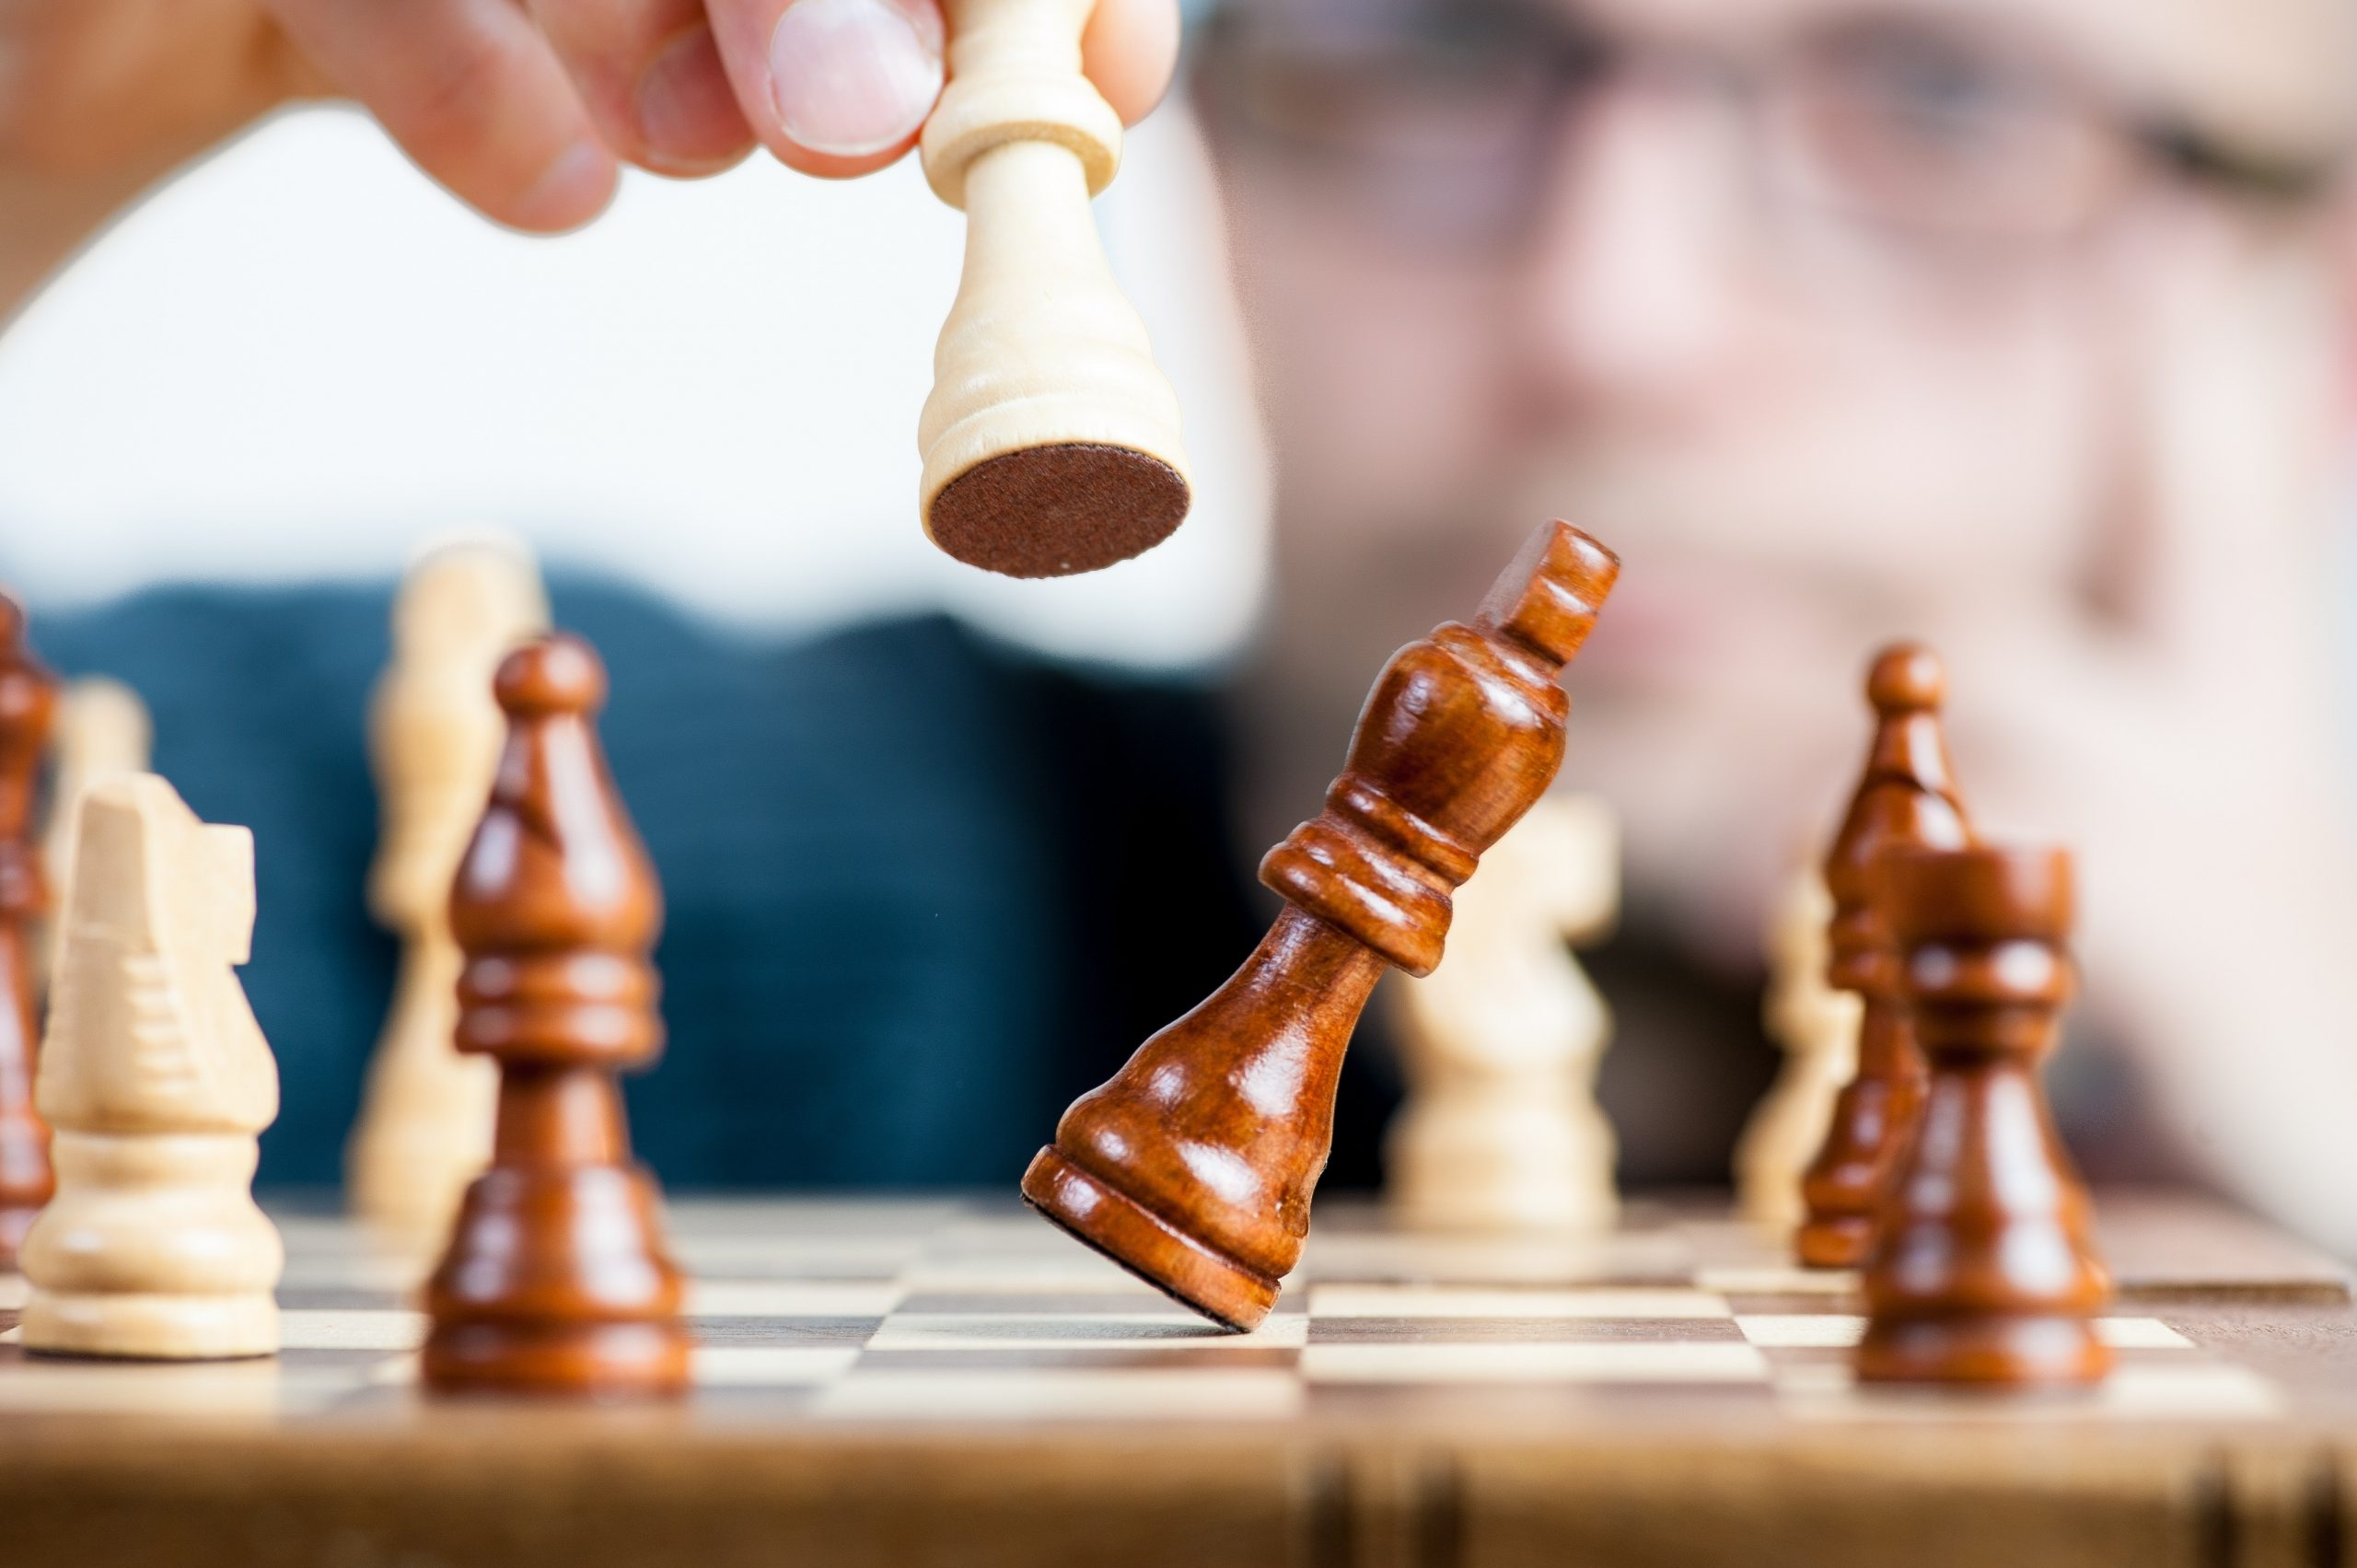 IT Risk Management: Are you ready to go all-in?